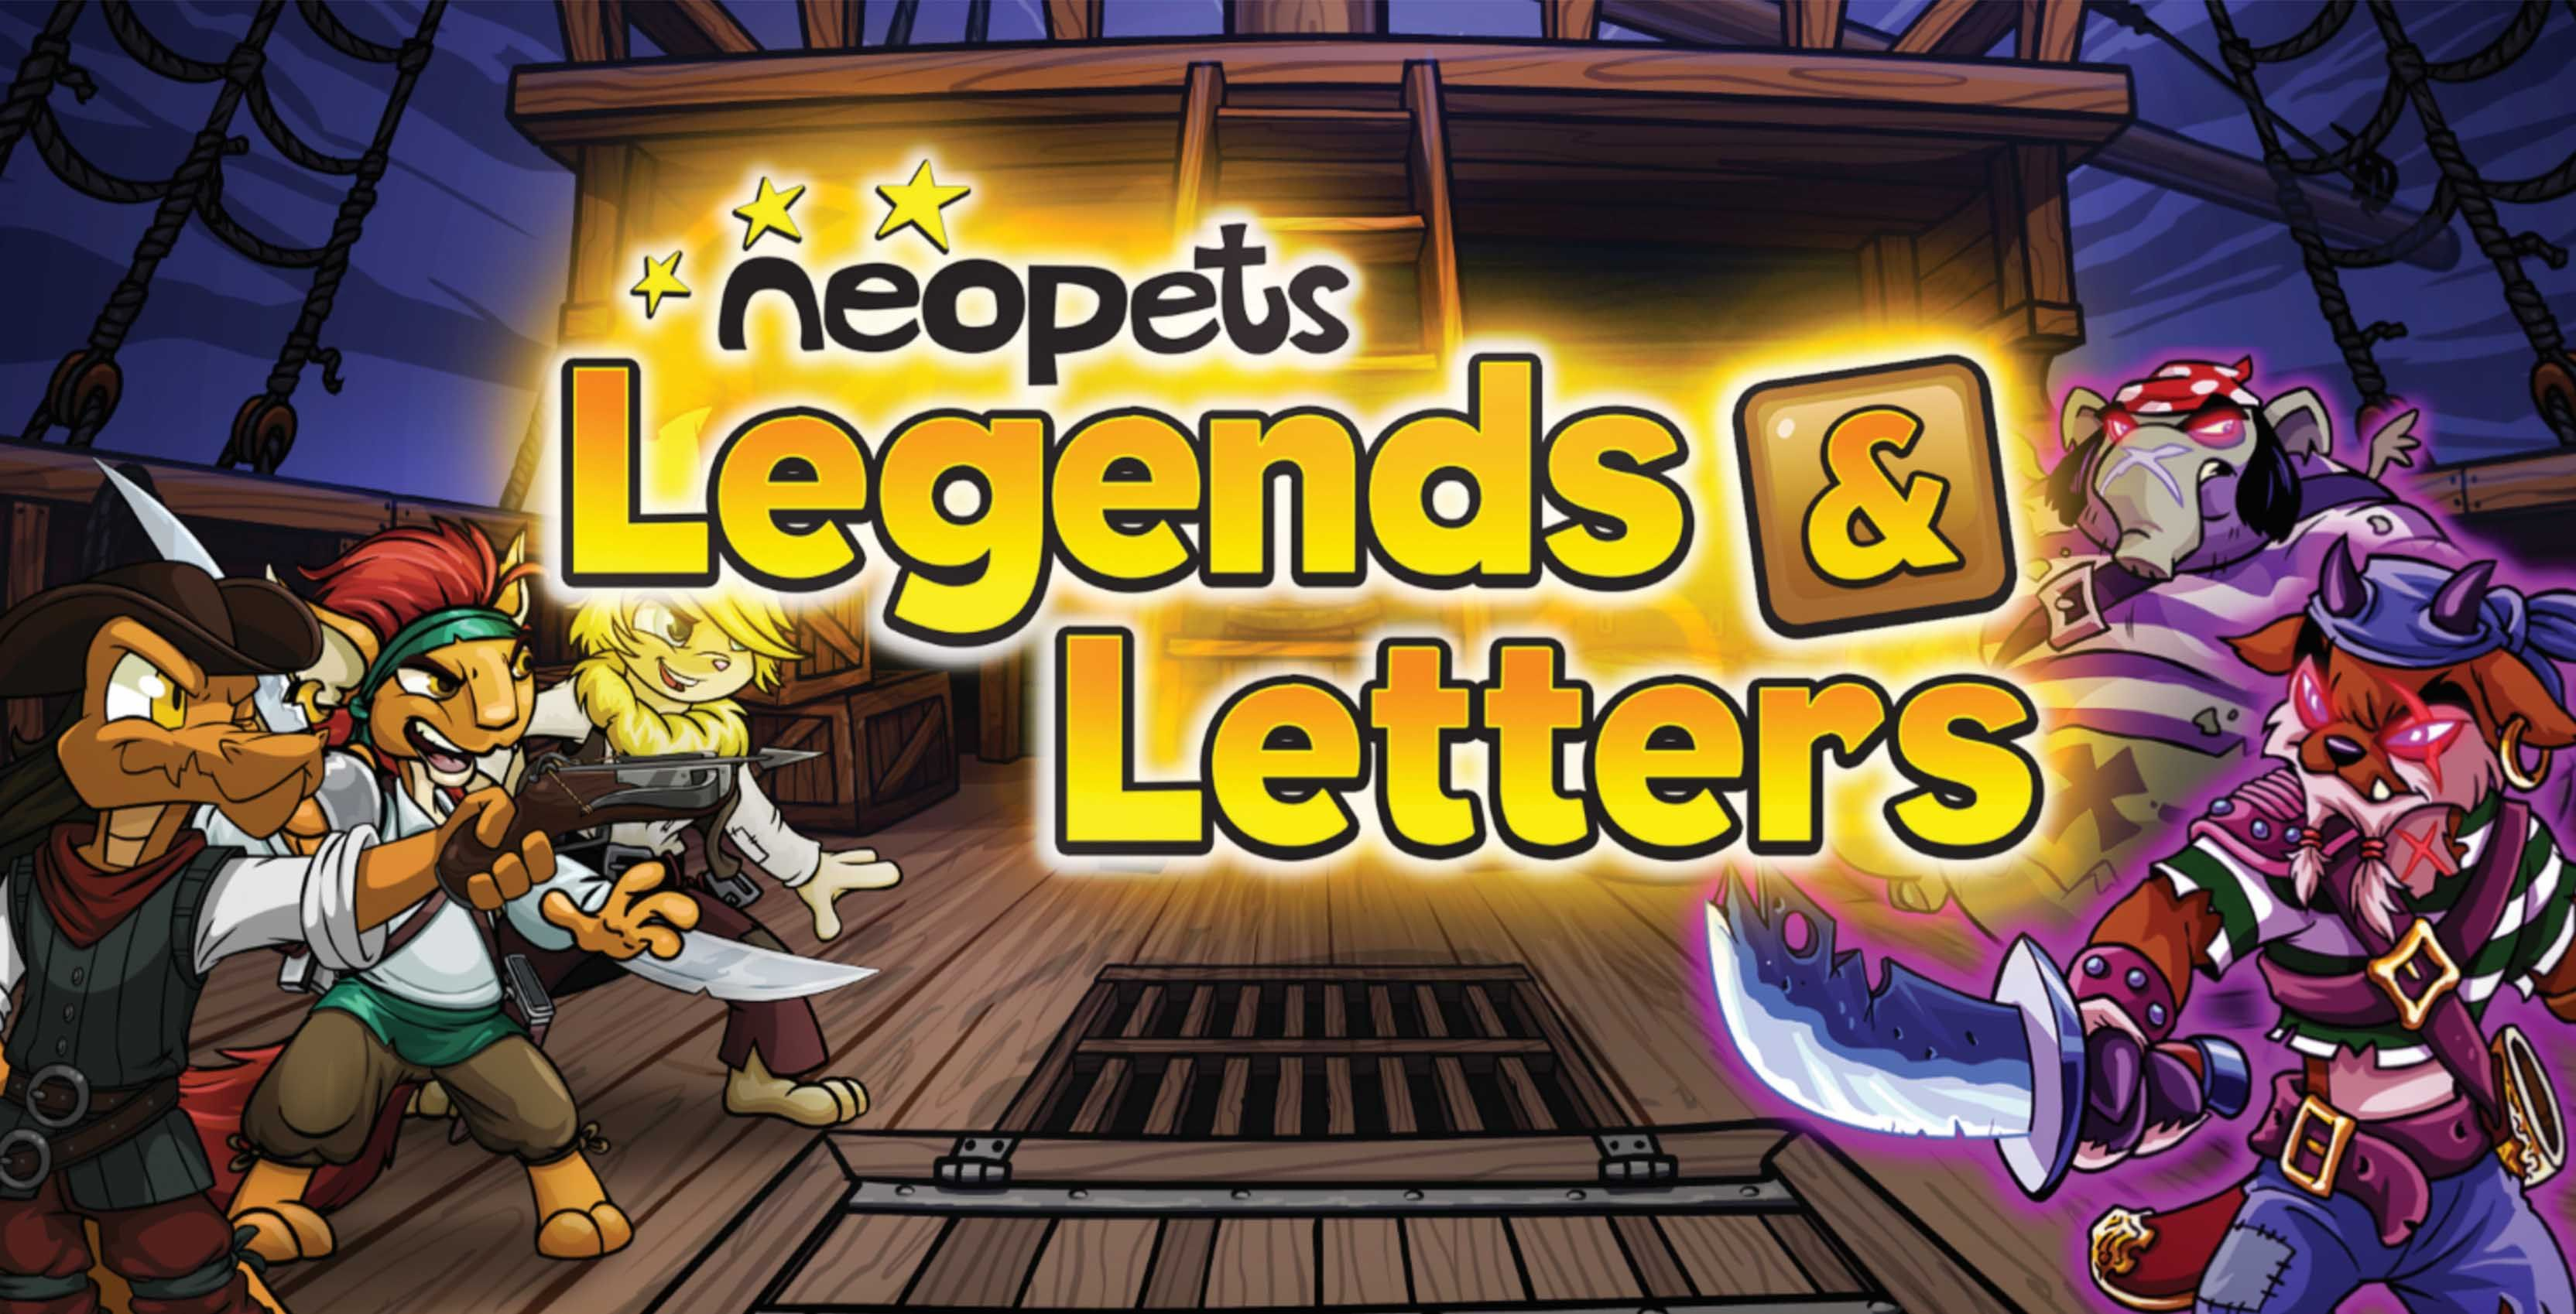 Neopets Legends App! The magicians, Scandal, The incredibles